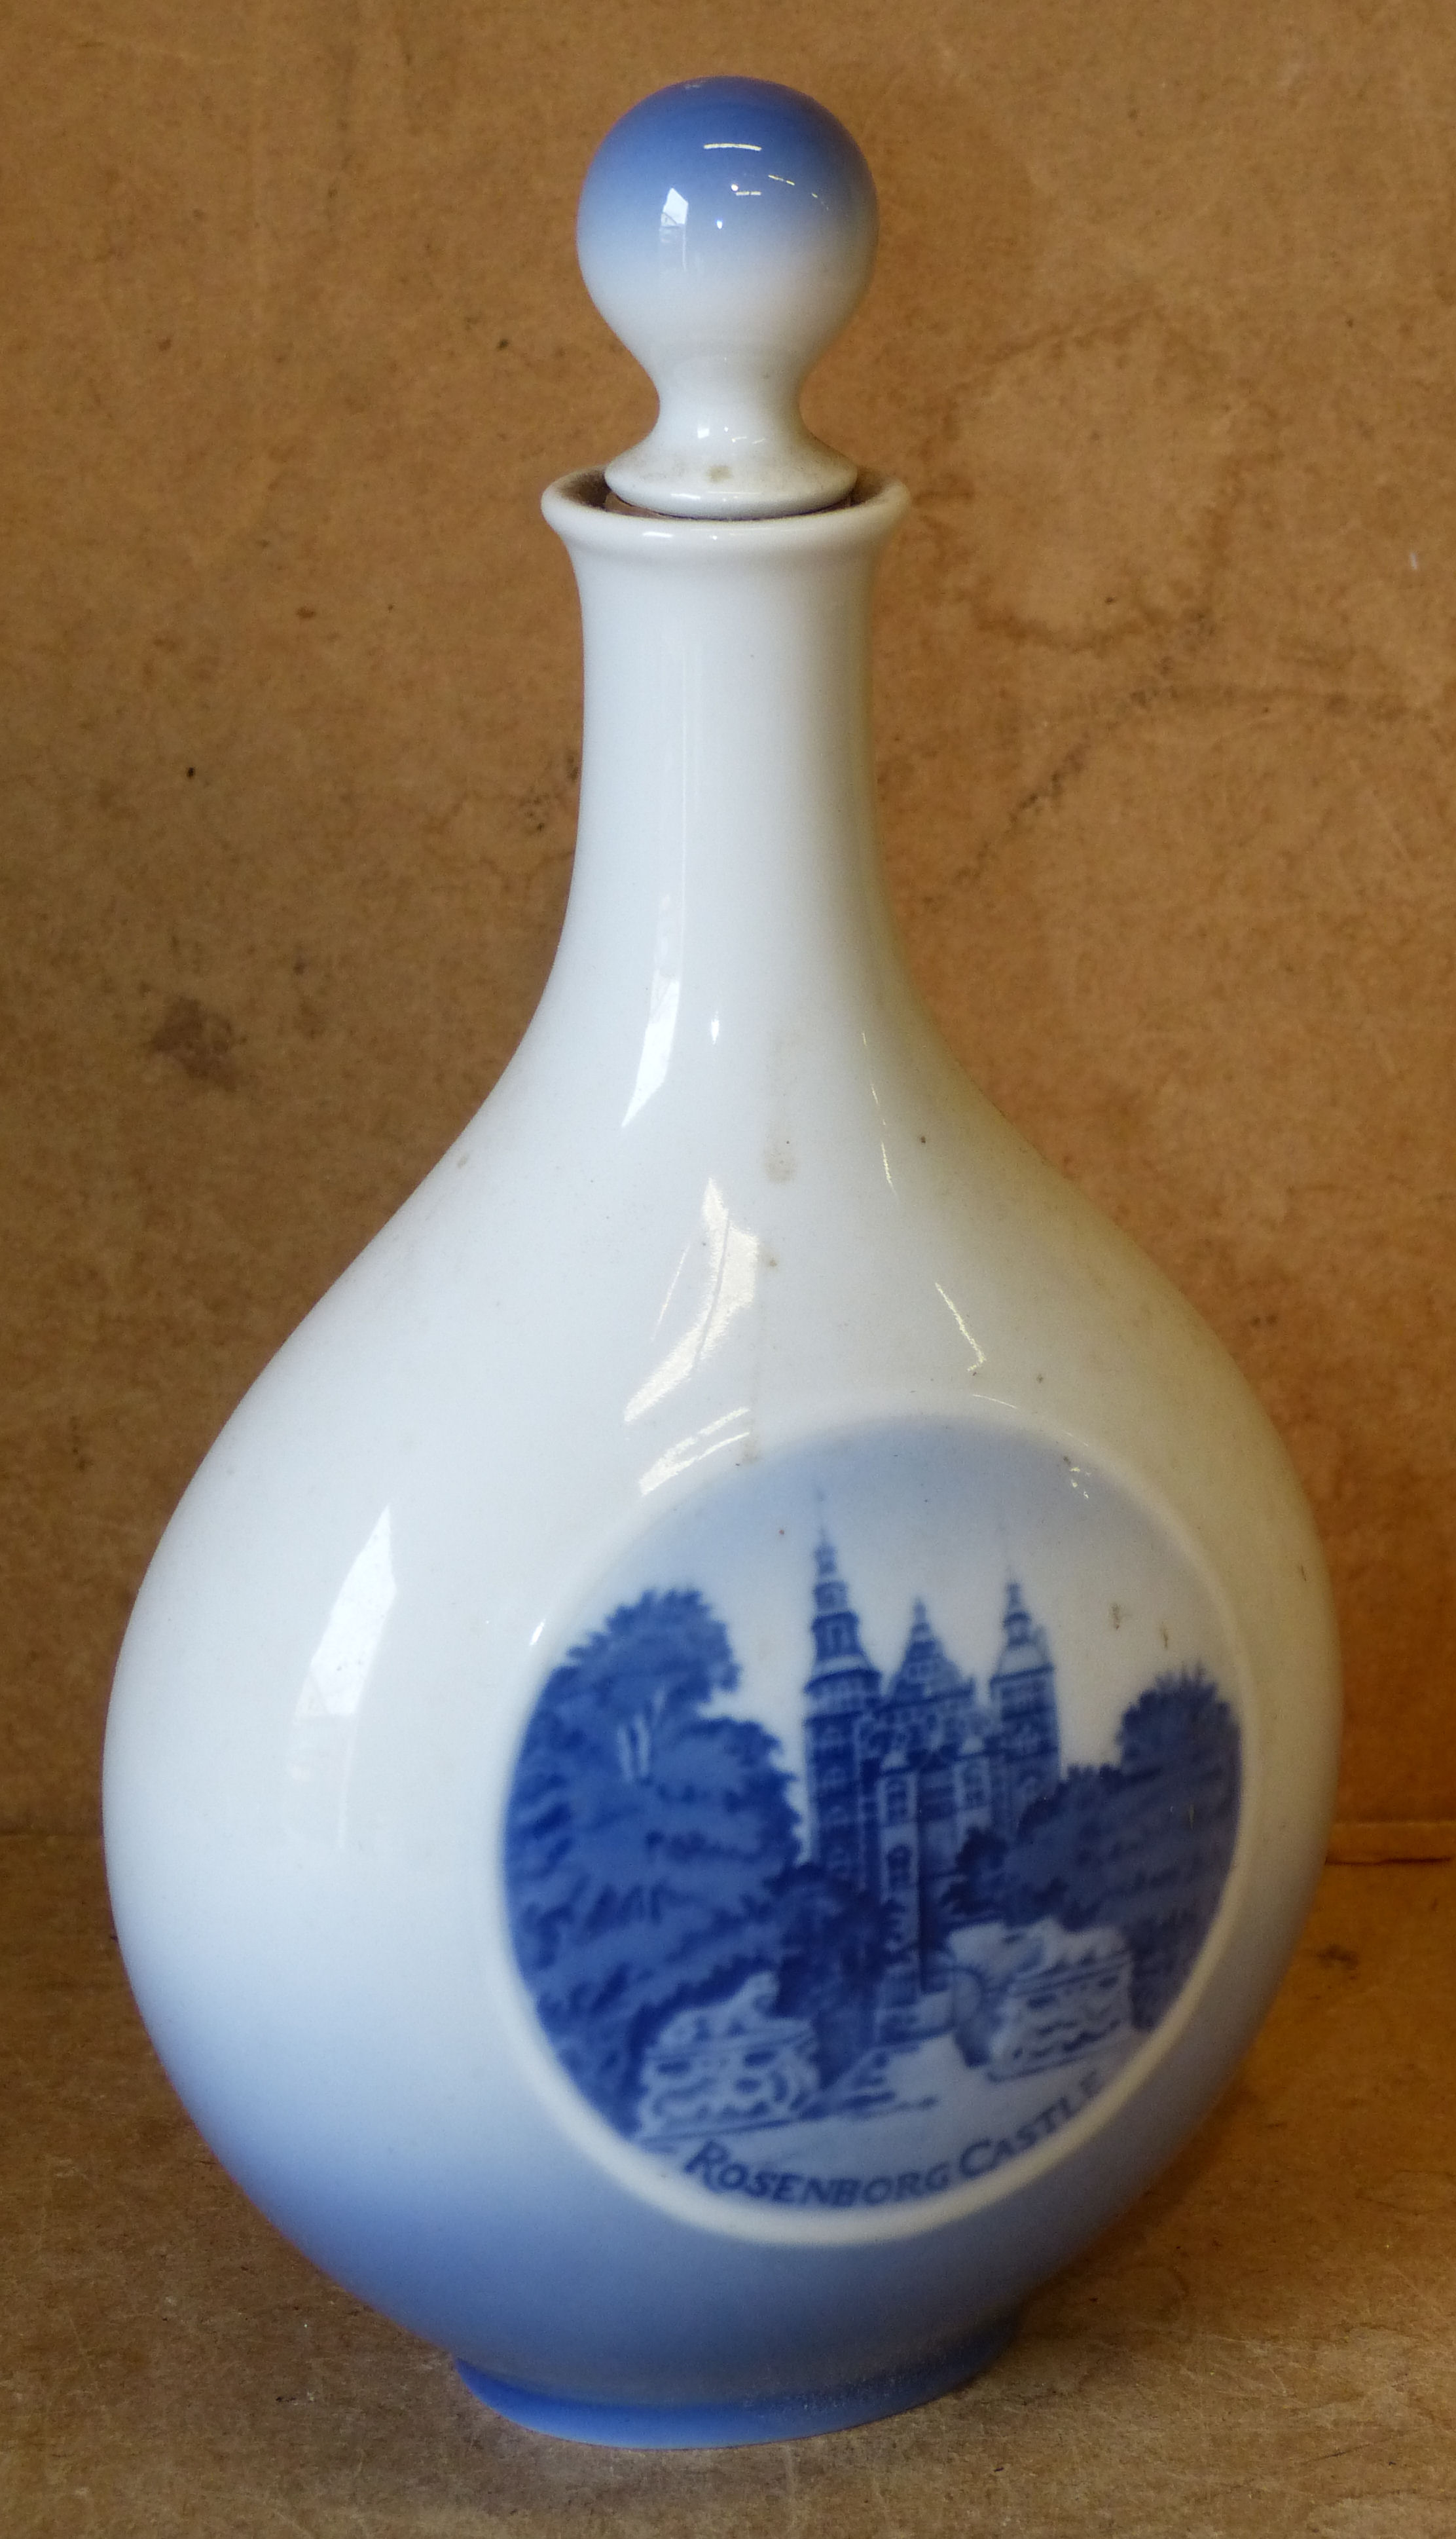 A Royal Copenhagen Oval Bulbous Thin Necked Bottle with stopper on blue